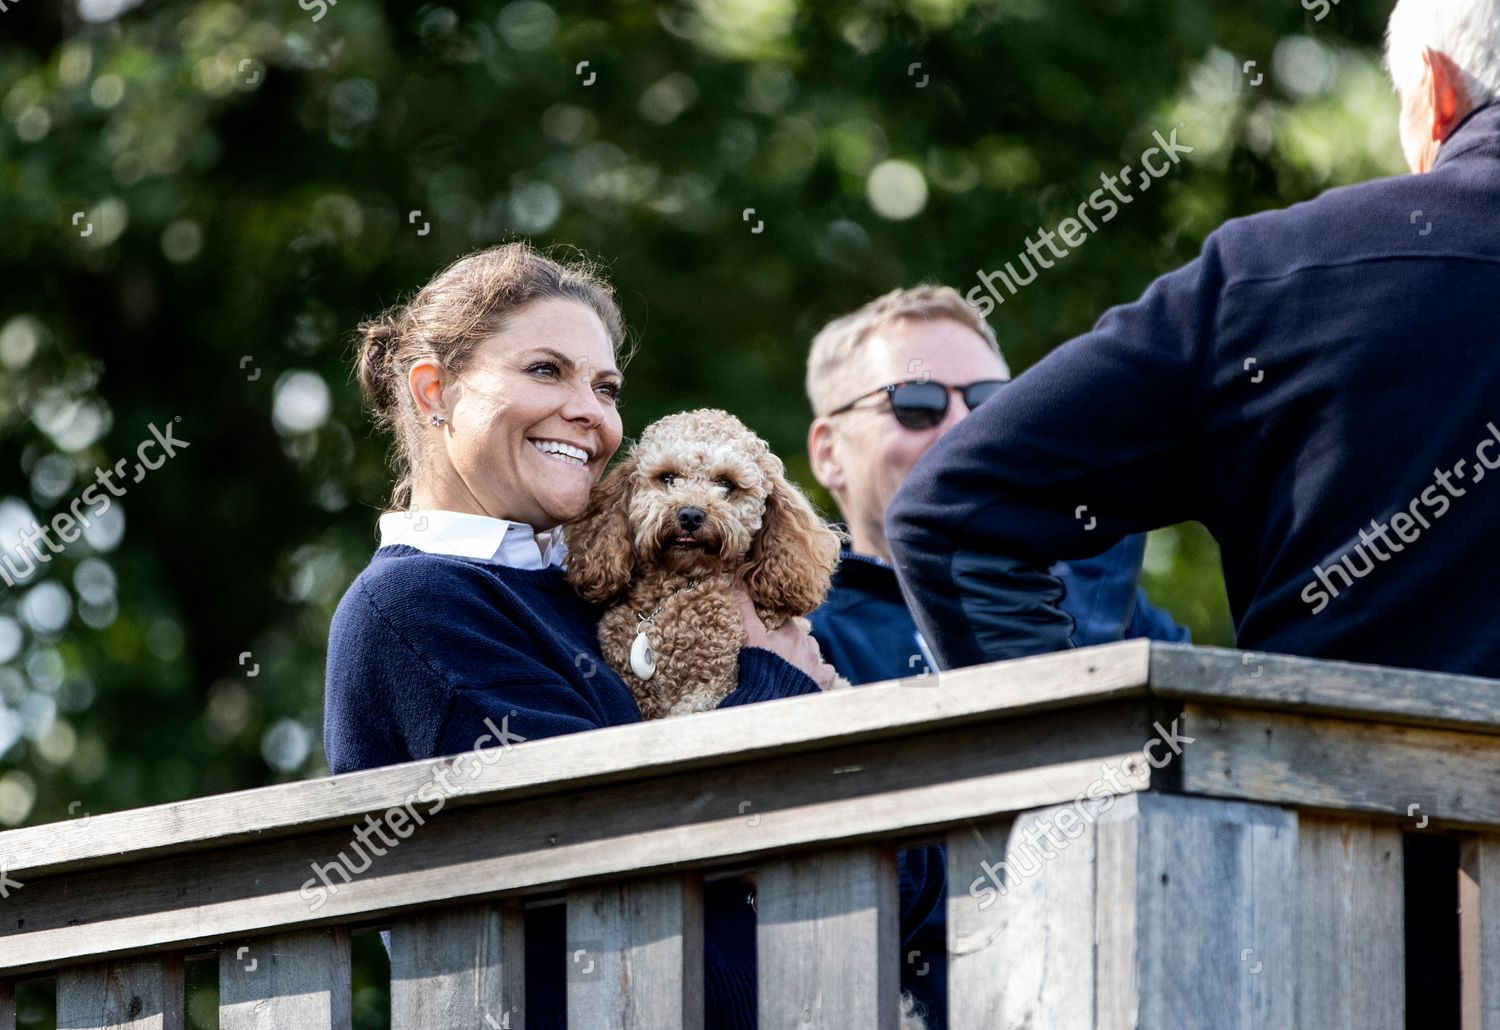 crown-princess-victoria-and-her-dog-rio-visit-alo-and-uto-sweden-shutterstock-editorial-12361980ah.jpg